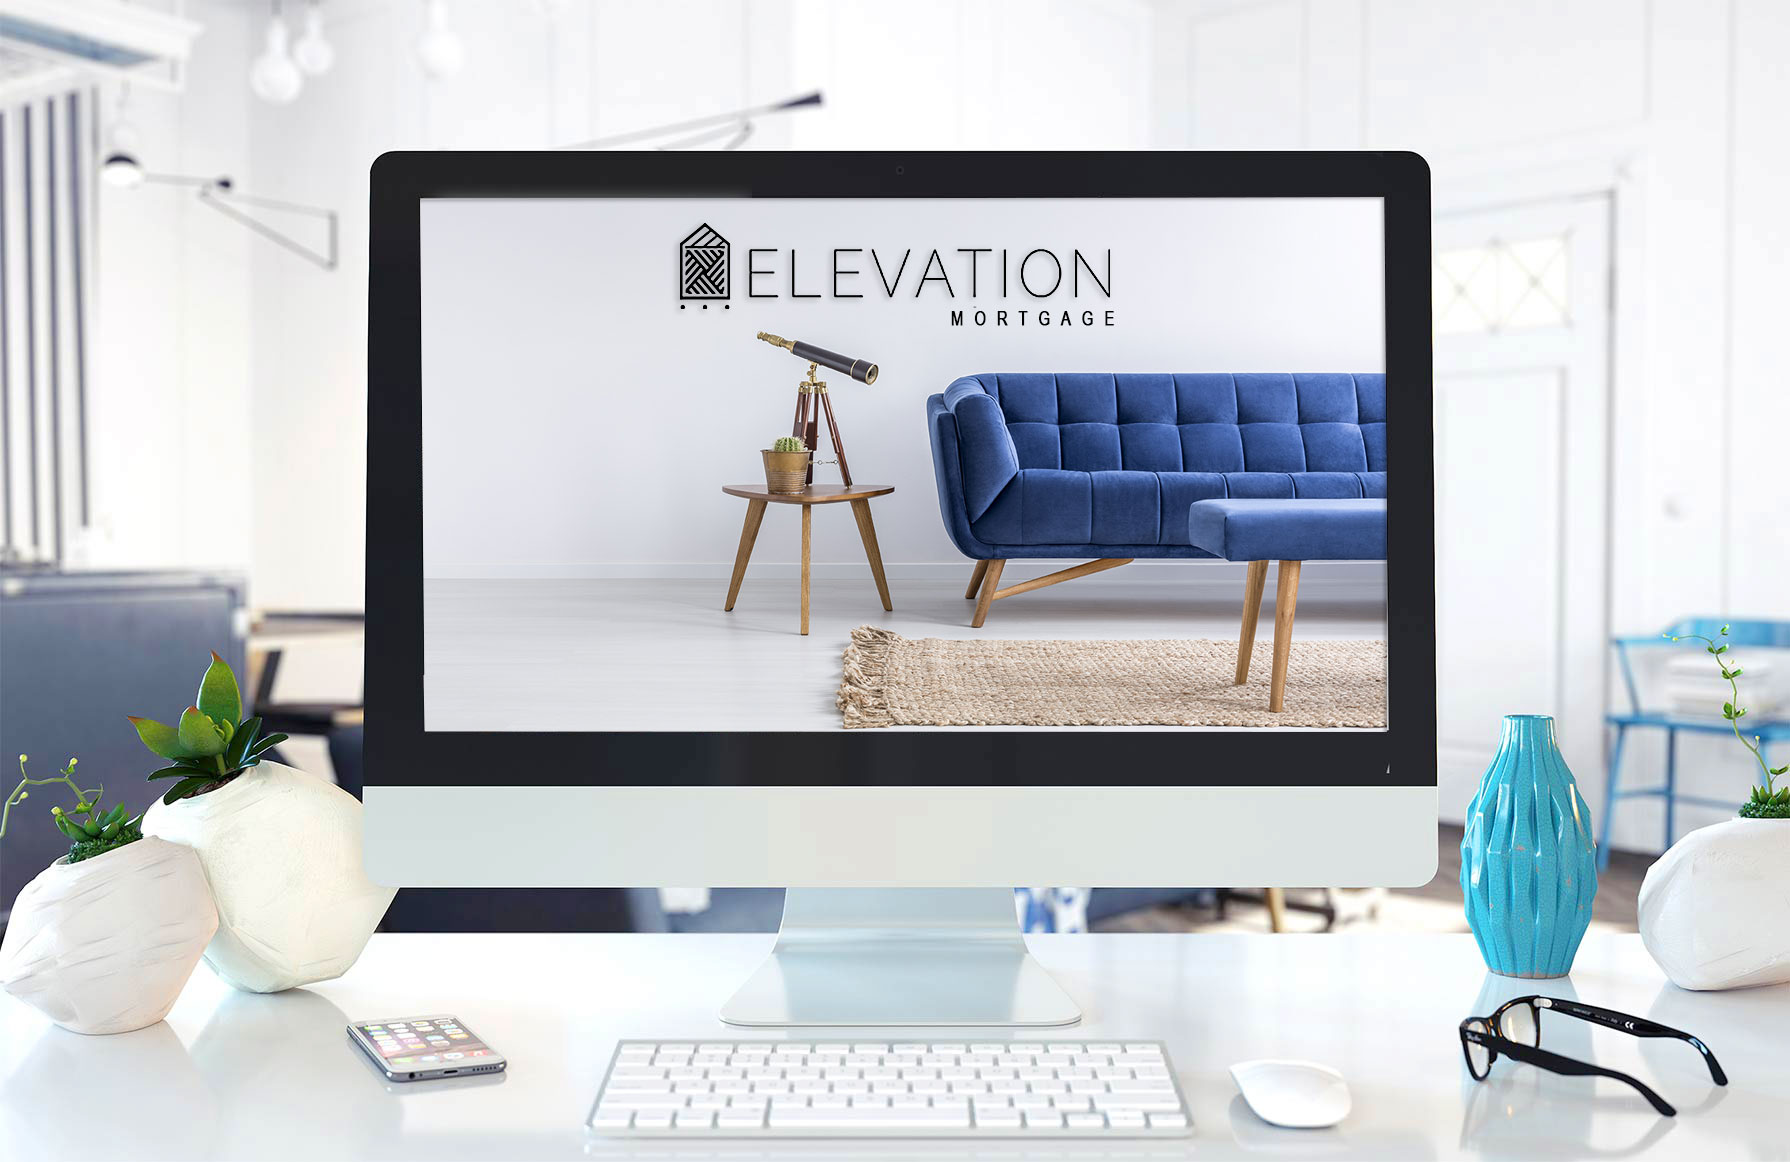 Elevation-Mortgage-Calgary